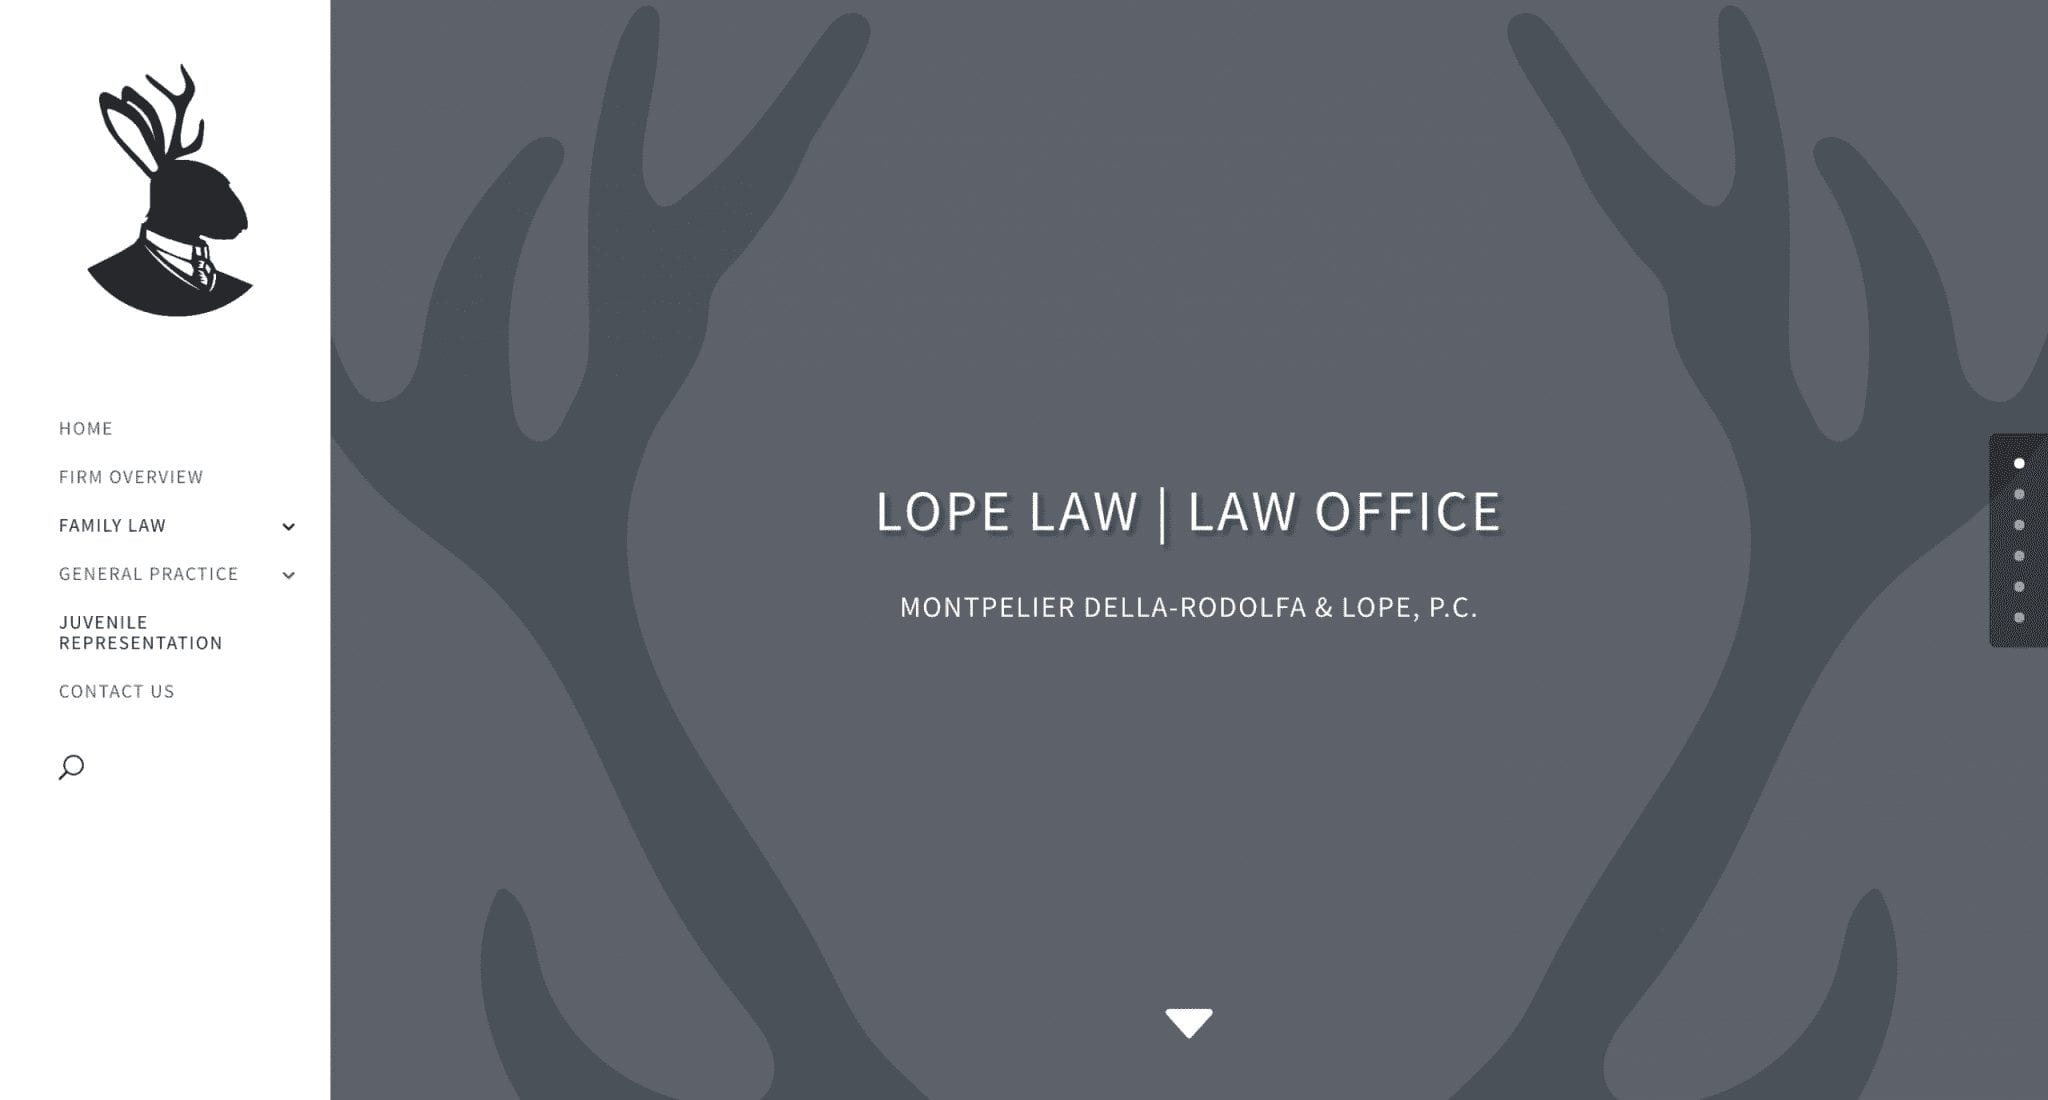 https://lope.law